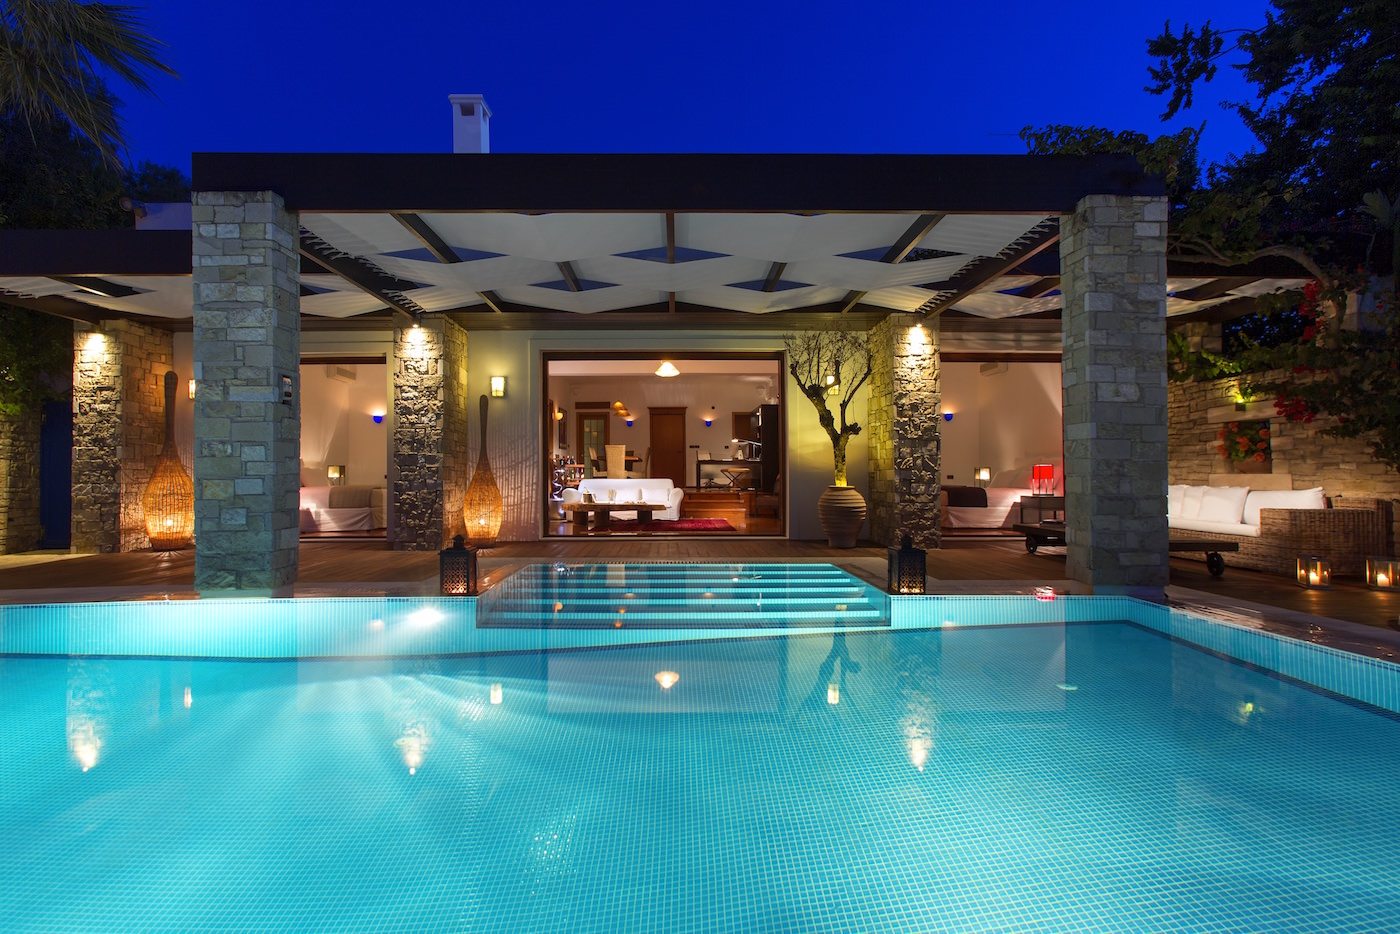 Porto-Zante-Luxury-Villas-Greece-Zakynthos-Greek-Islands-Heated-Pool-Beachfront-Exclusive-Villas-16-2001-2-1400pixelsOCT2015